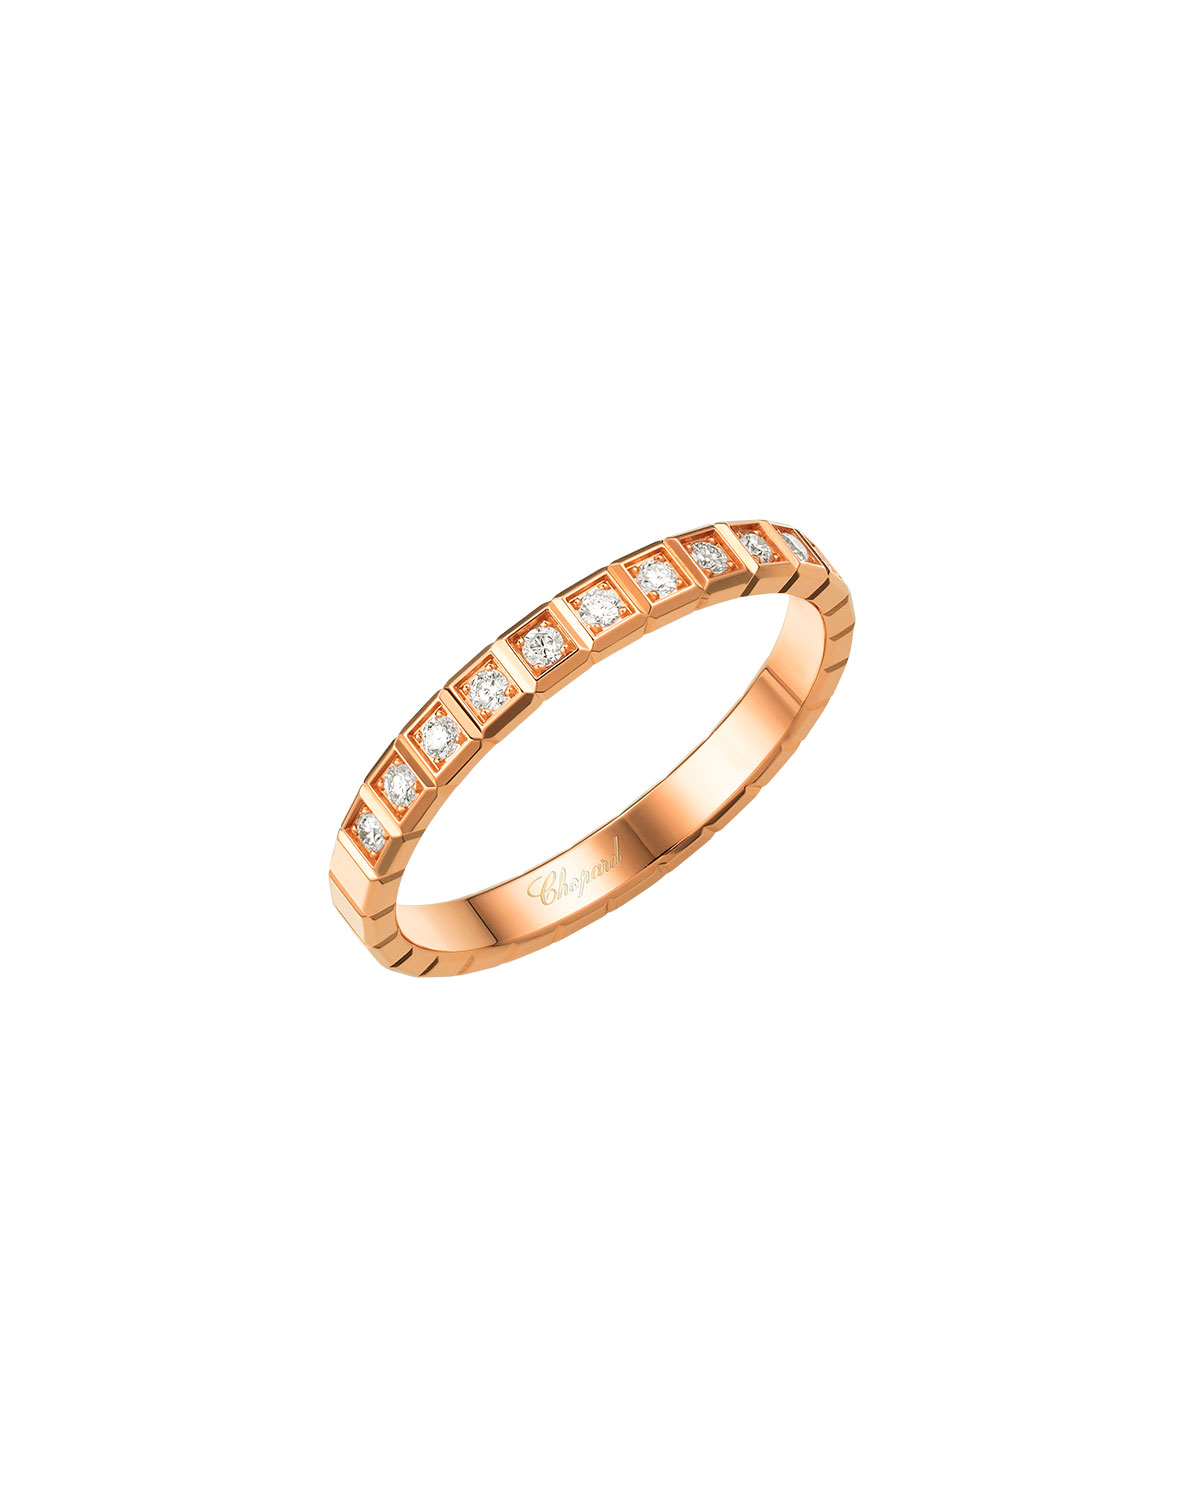 Chopard Ice Cube Mini Diamond Ring in 18K Rose Gold, Size 51